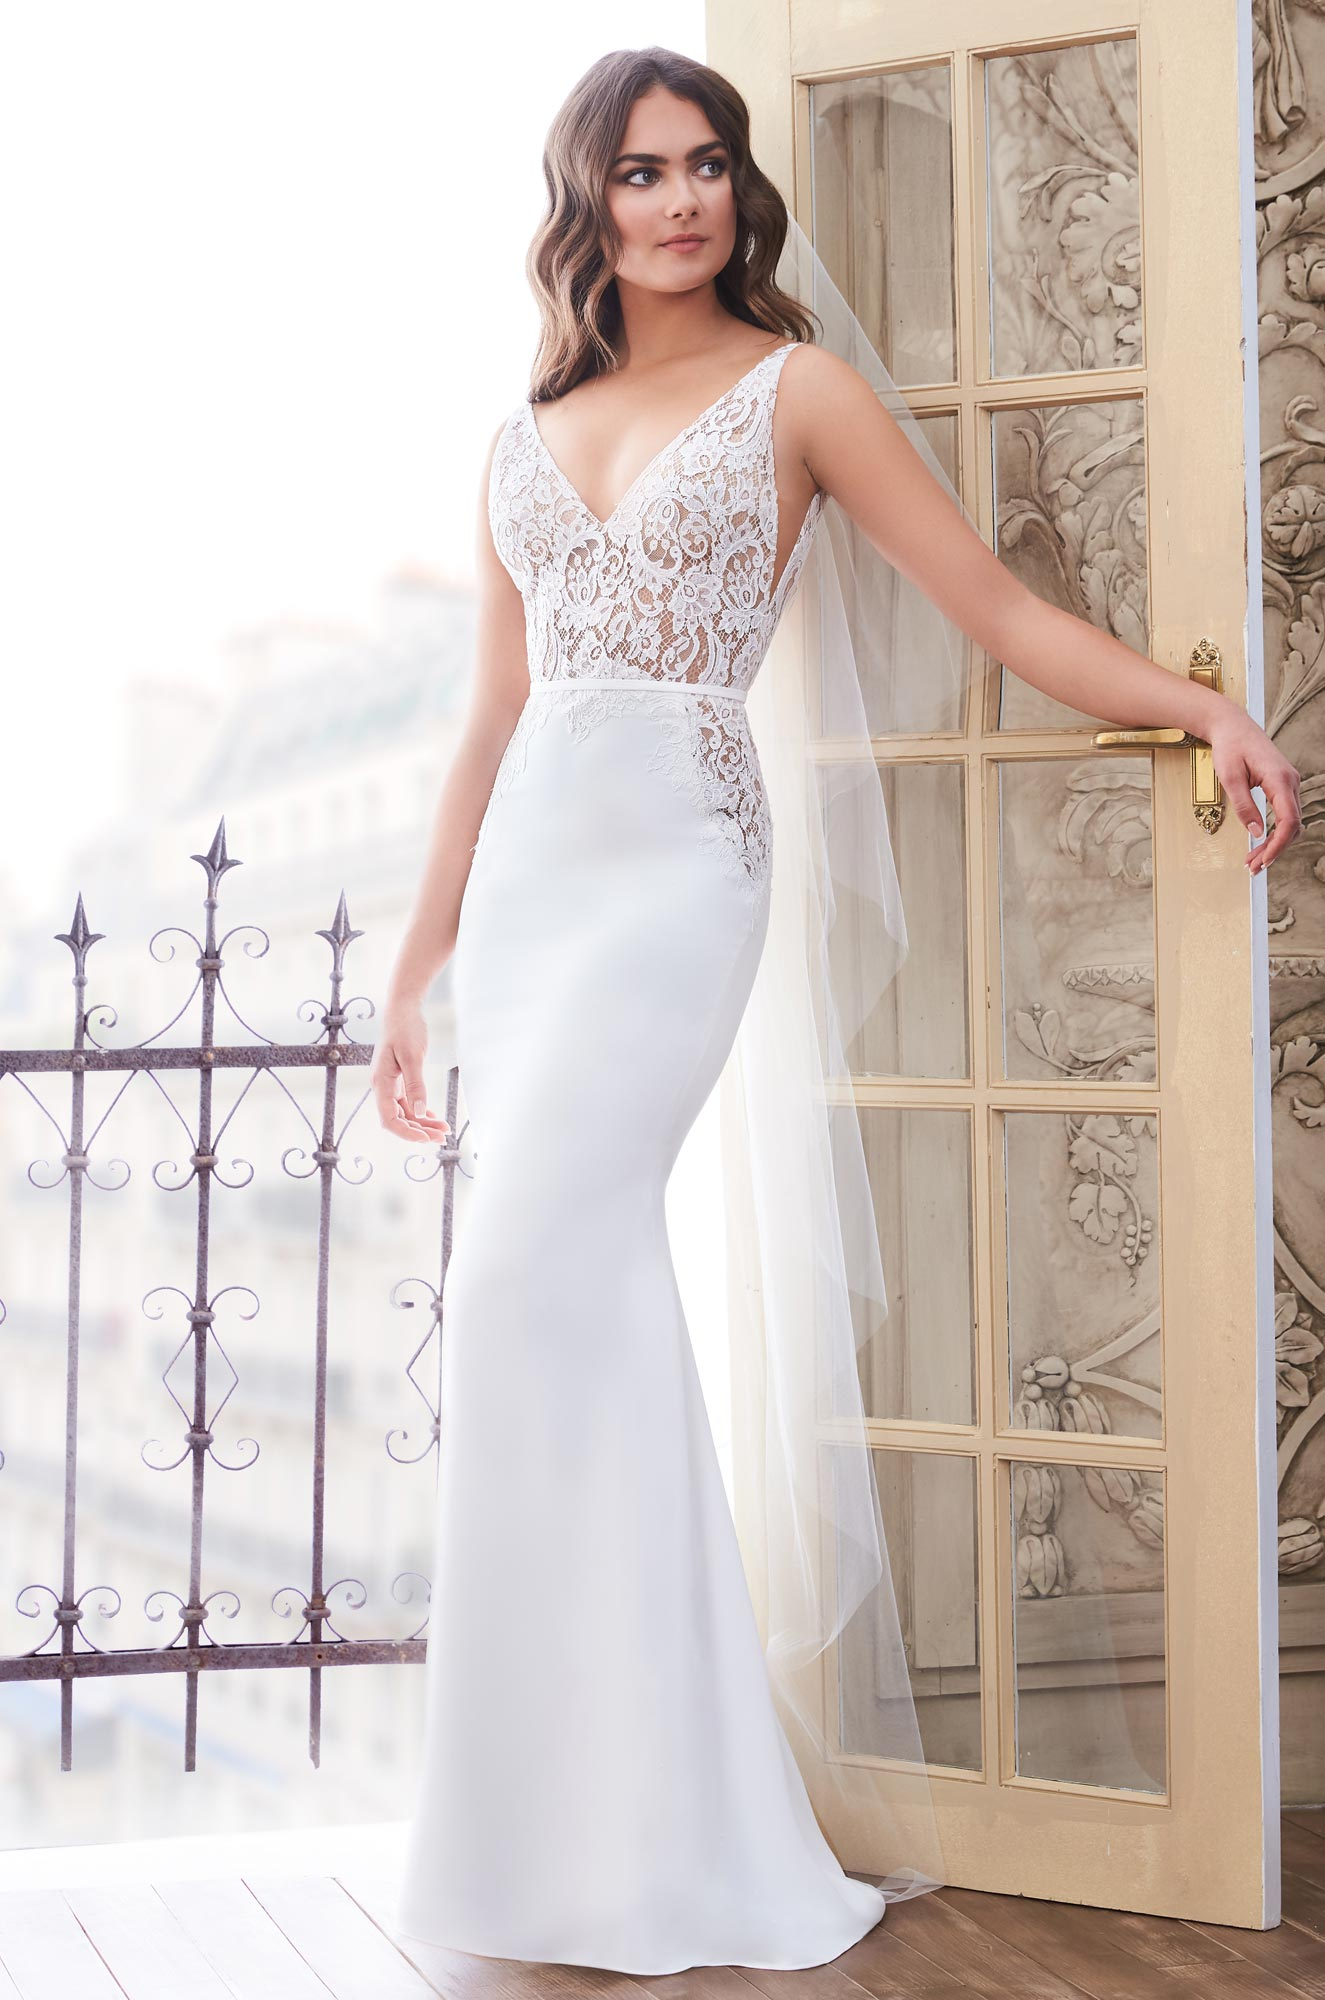 Lace Cut Out Wedding Dress Style 4859 Paloma Blanca